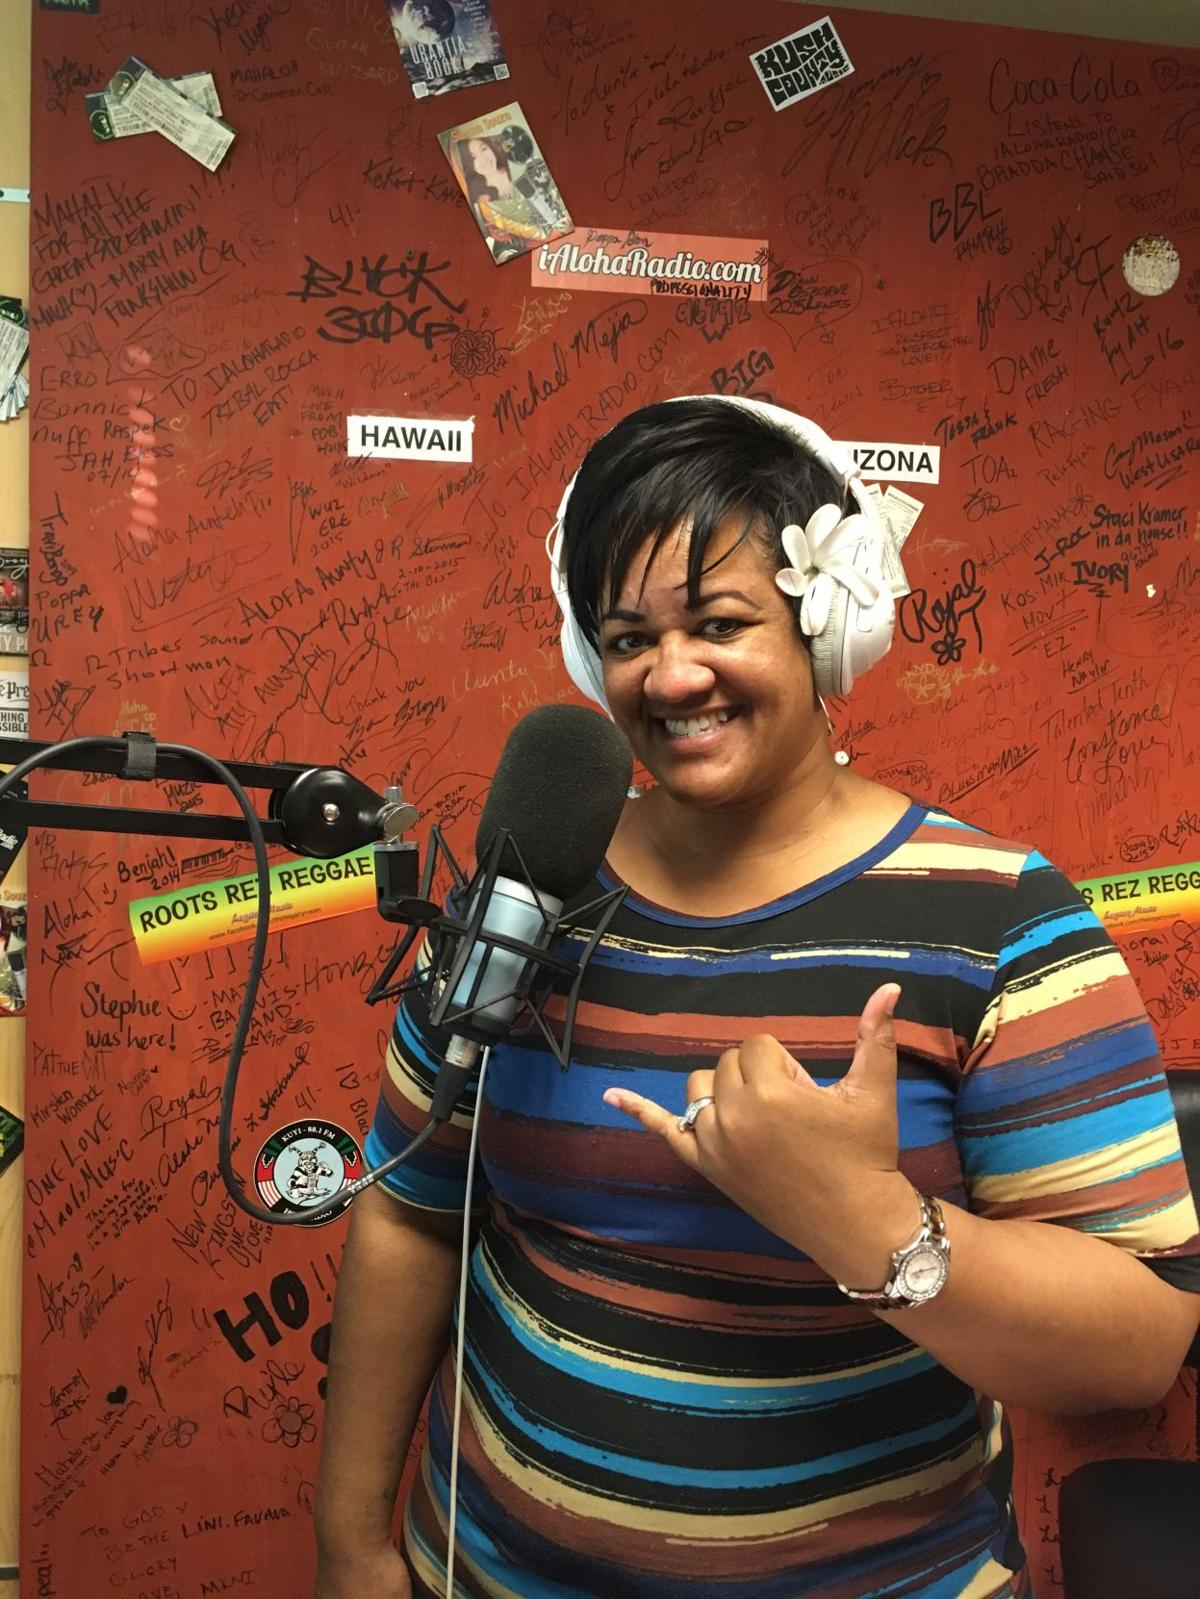 Ahwatukee real estate professional Devida Pi'ilani Lewis is developing a following with her Hawaiian music programming